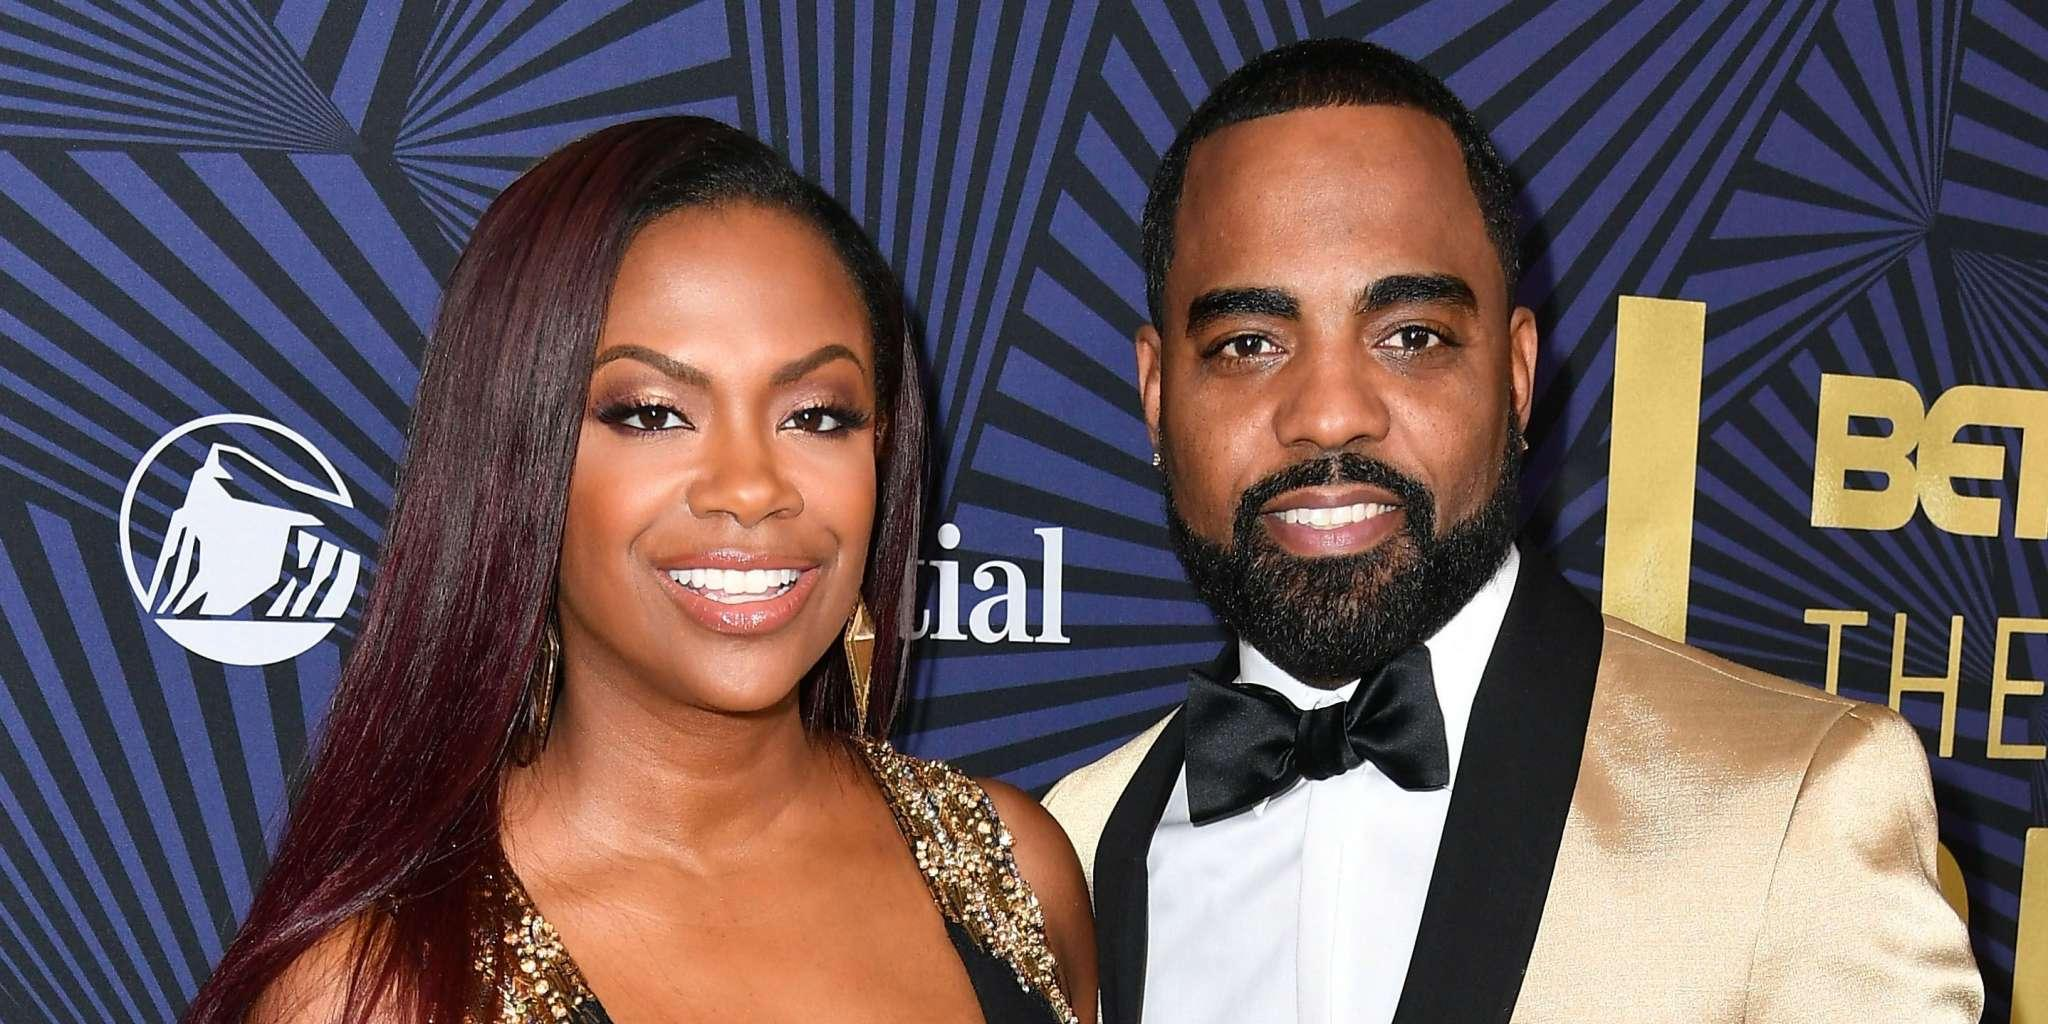 Kandi Burruss Praises Todd Tucker For Fathers' Day - Check Out His Post Below